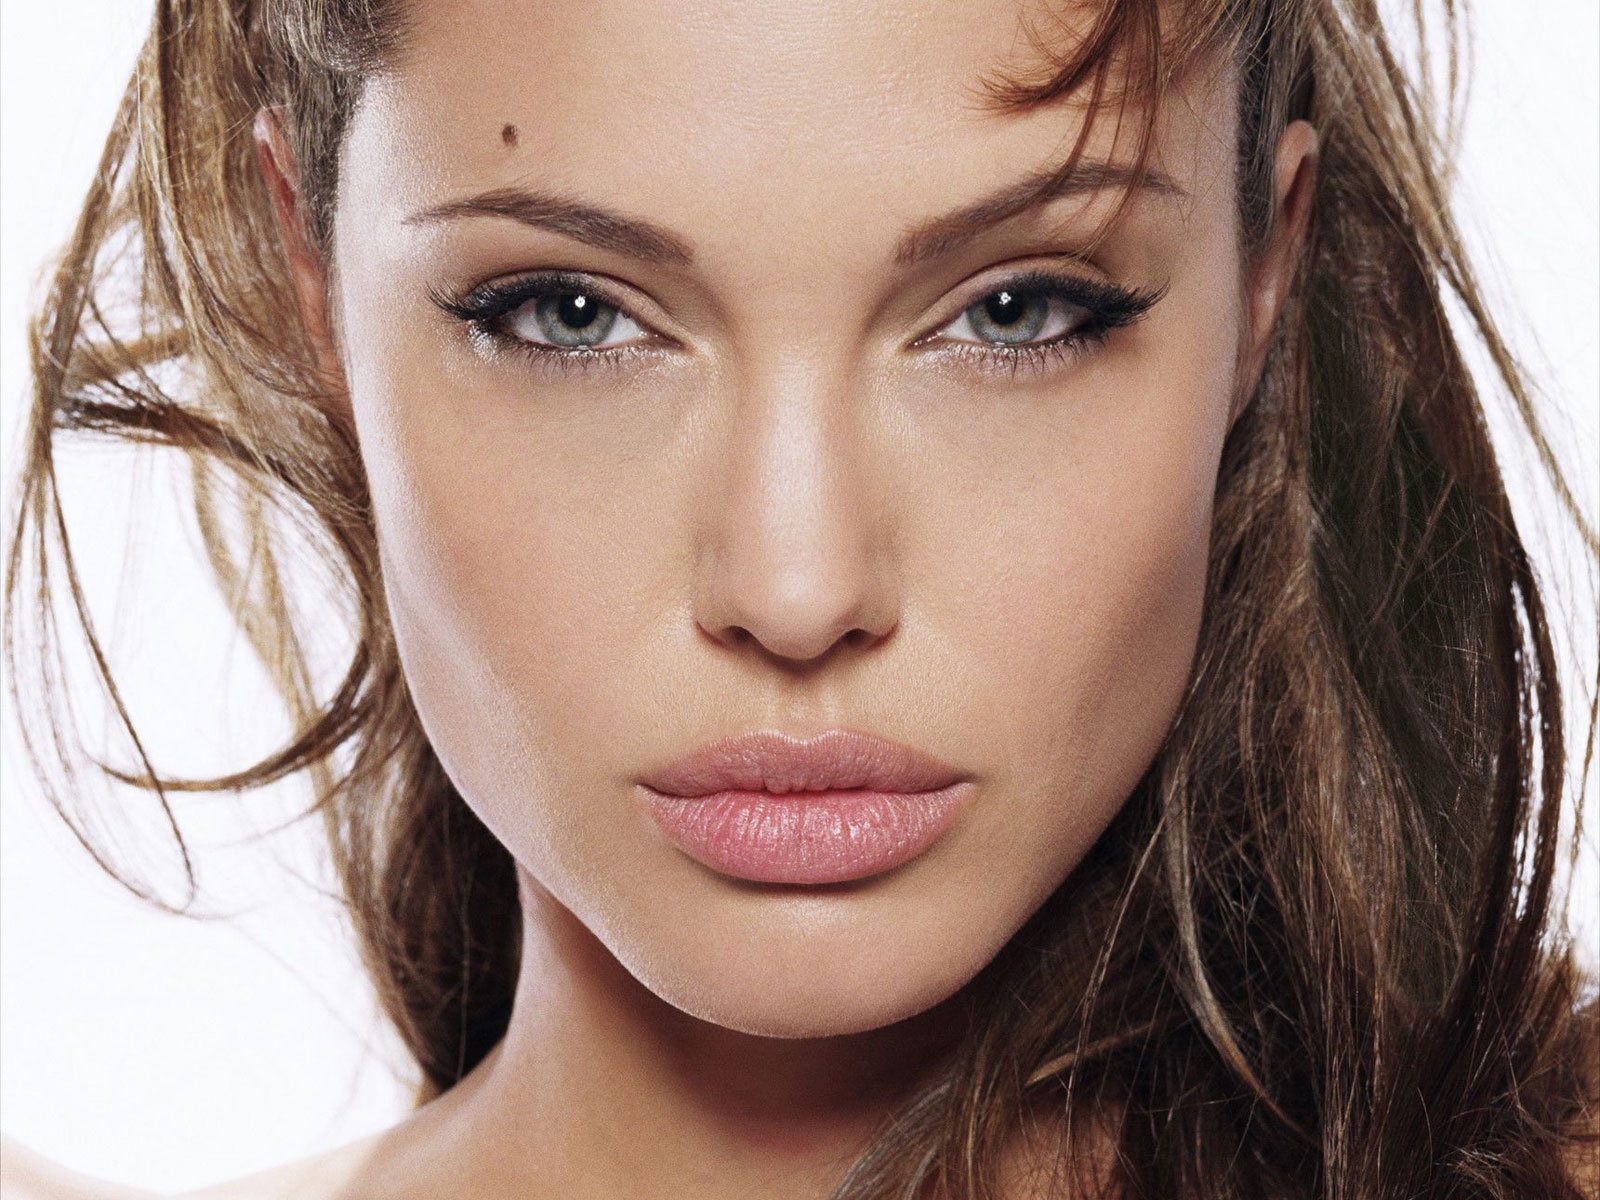 50 Interesting Facts About Angelina Jolie : People : BOOMSbeat